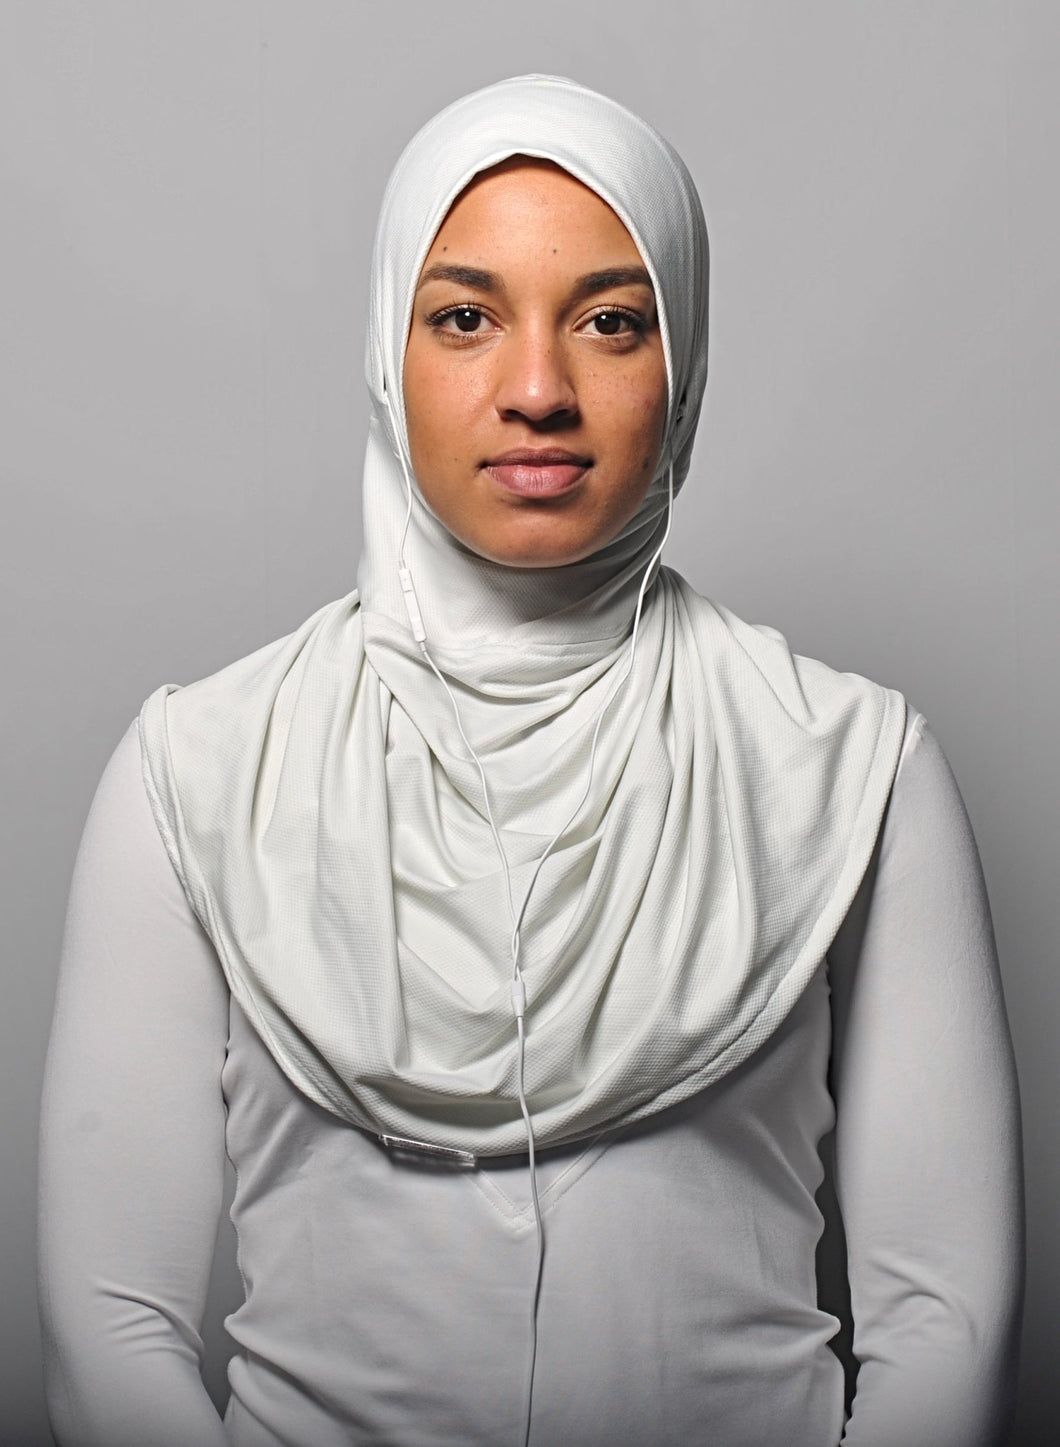 MoreSlim Off-white sports hijab